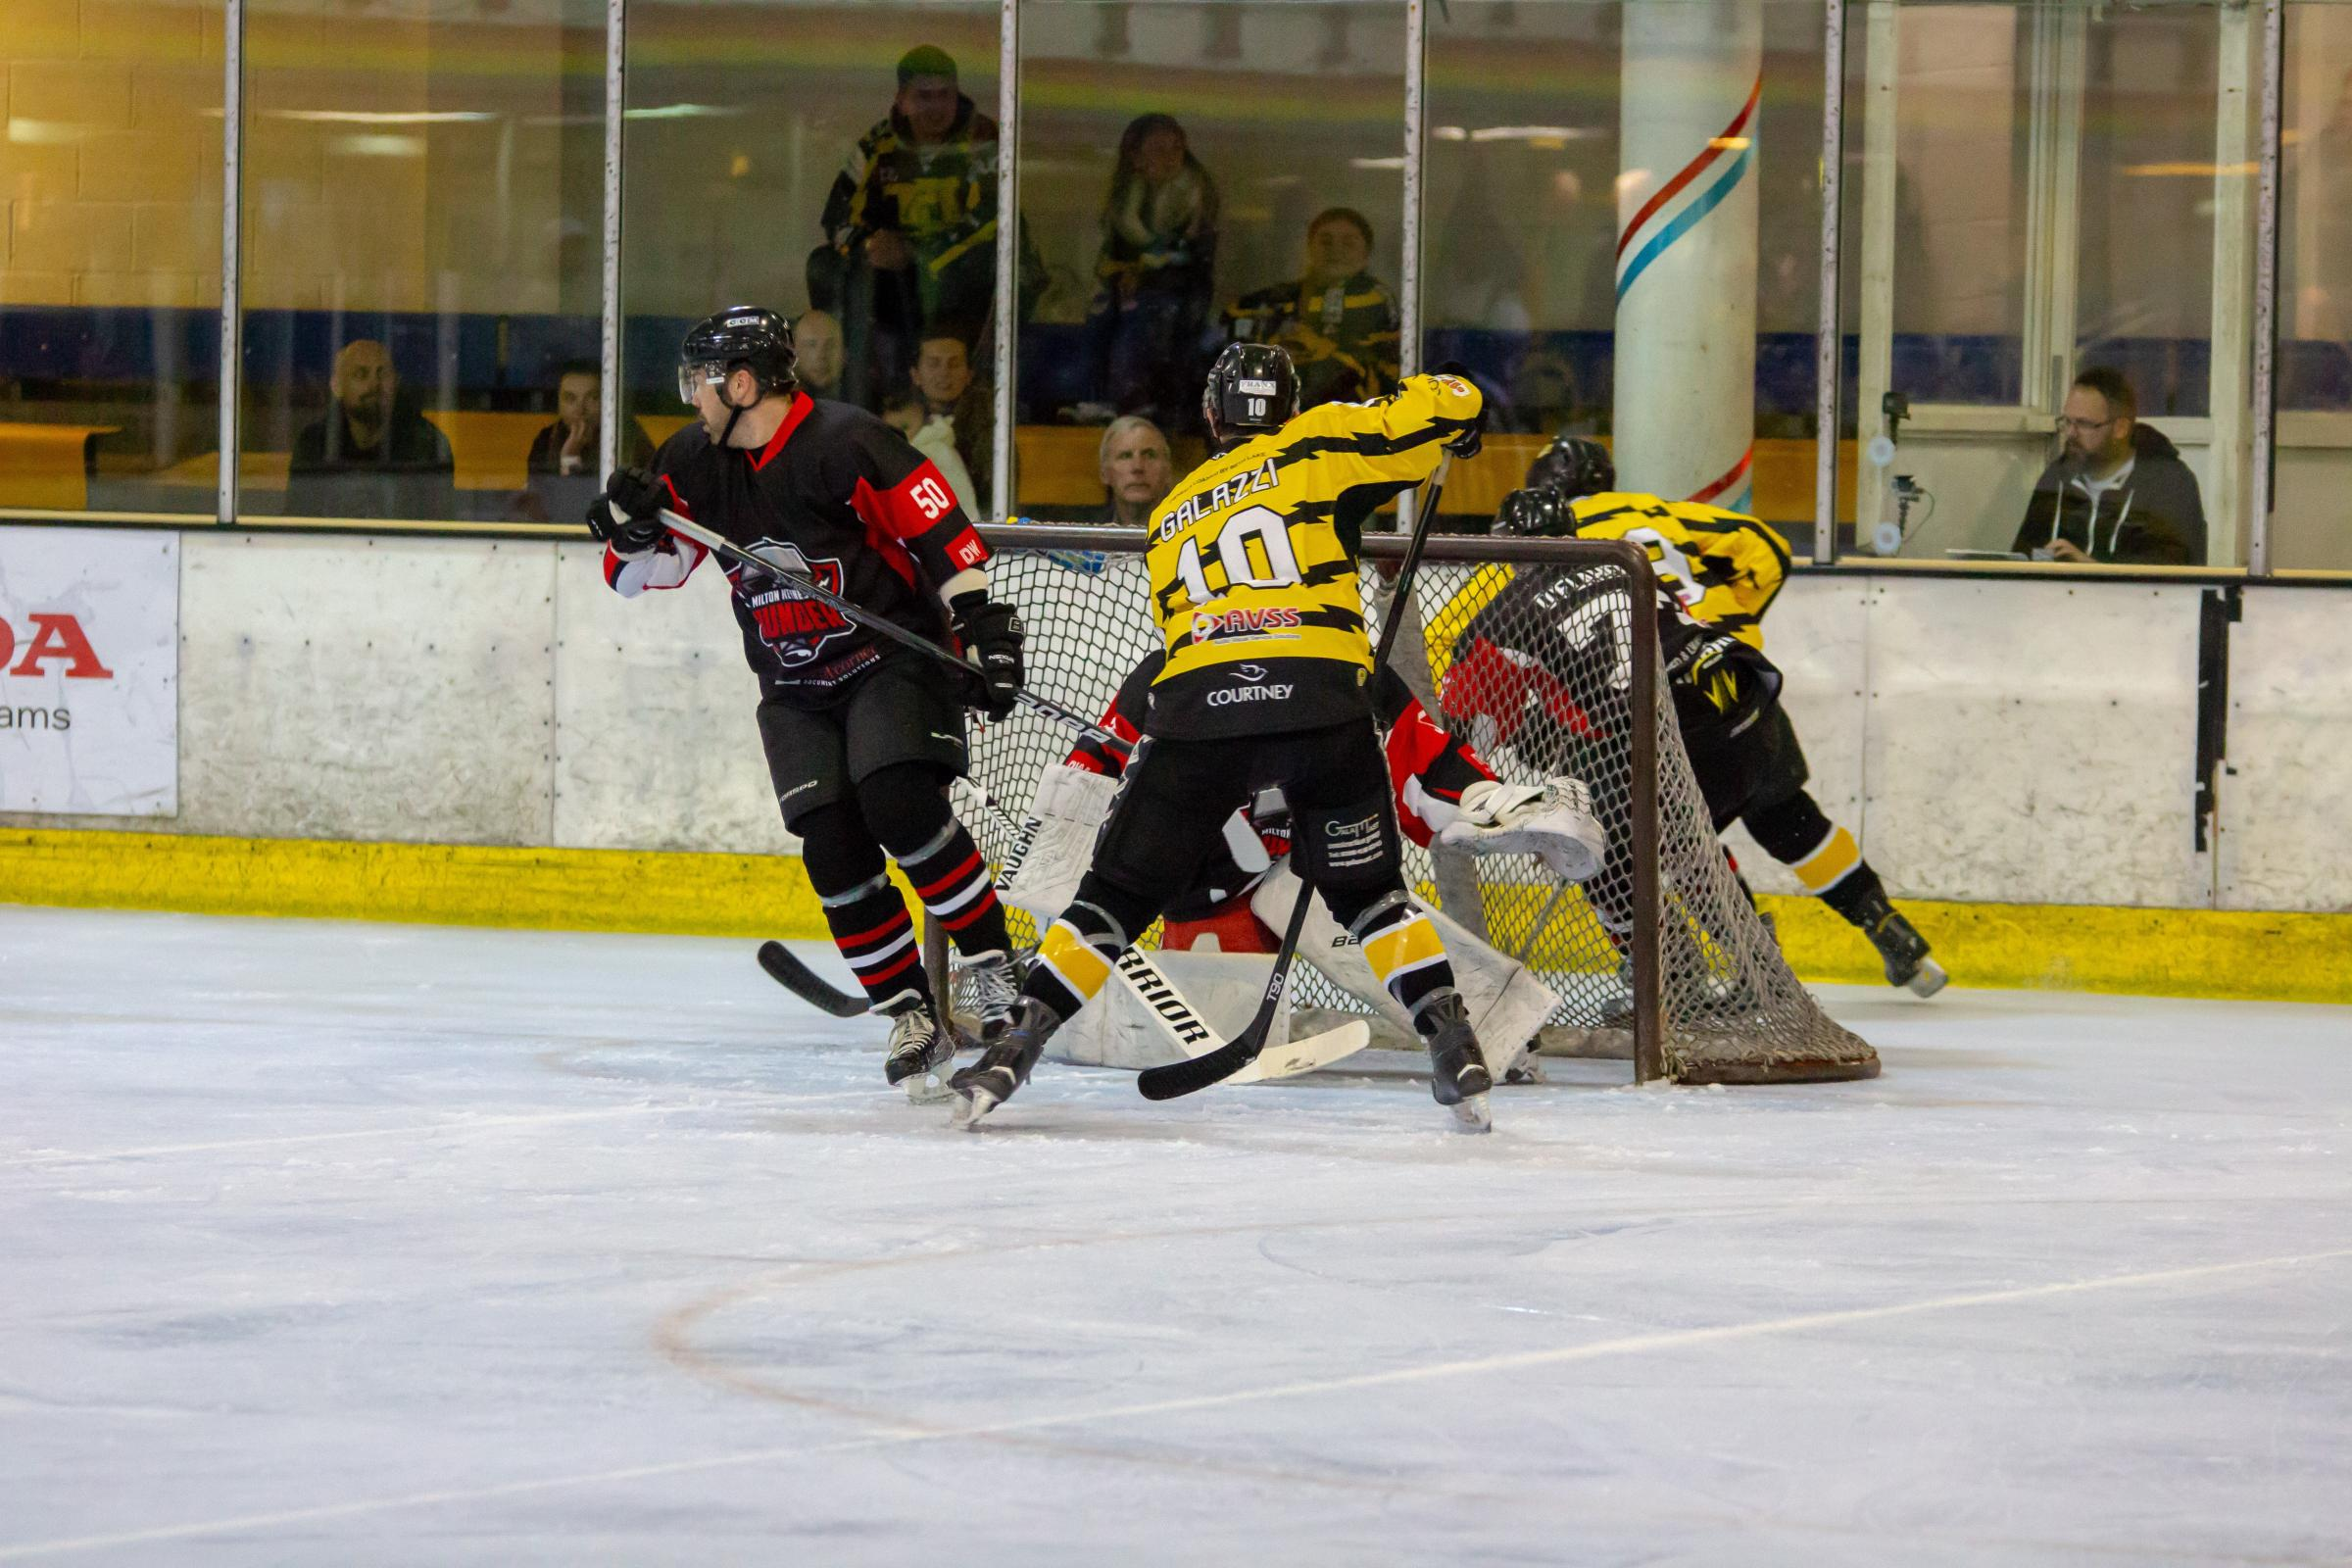 Action from Bracknell Bees' 2-0 home win against MK Thunder    Pictures by Dan Blackham